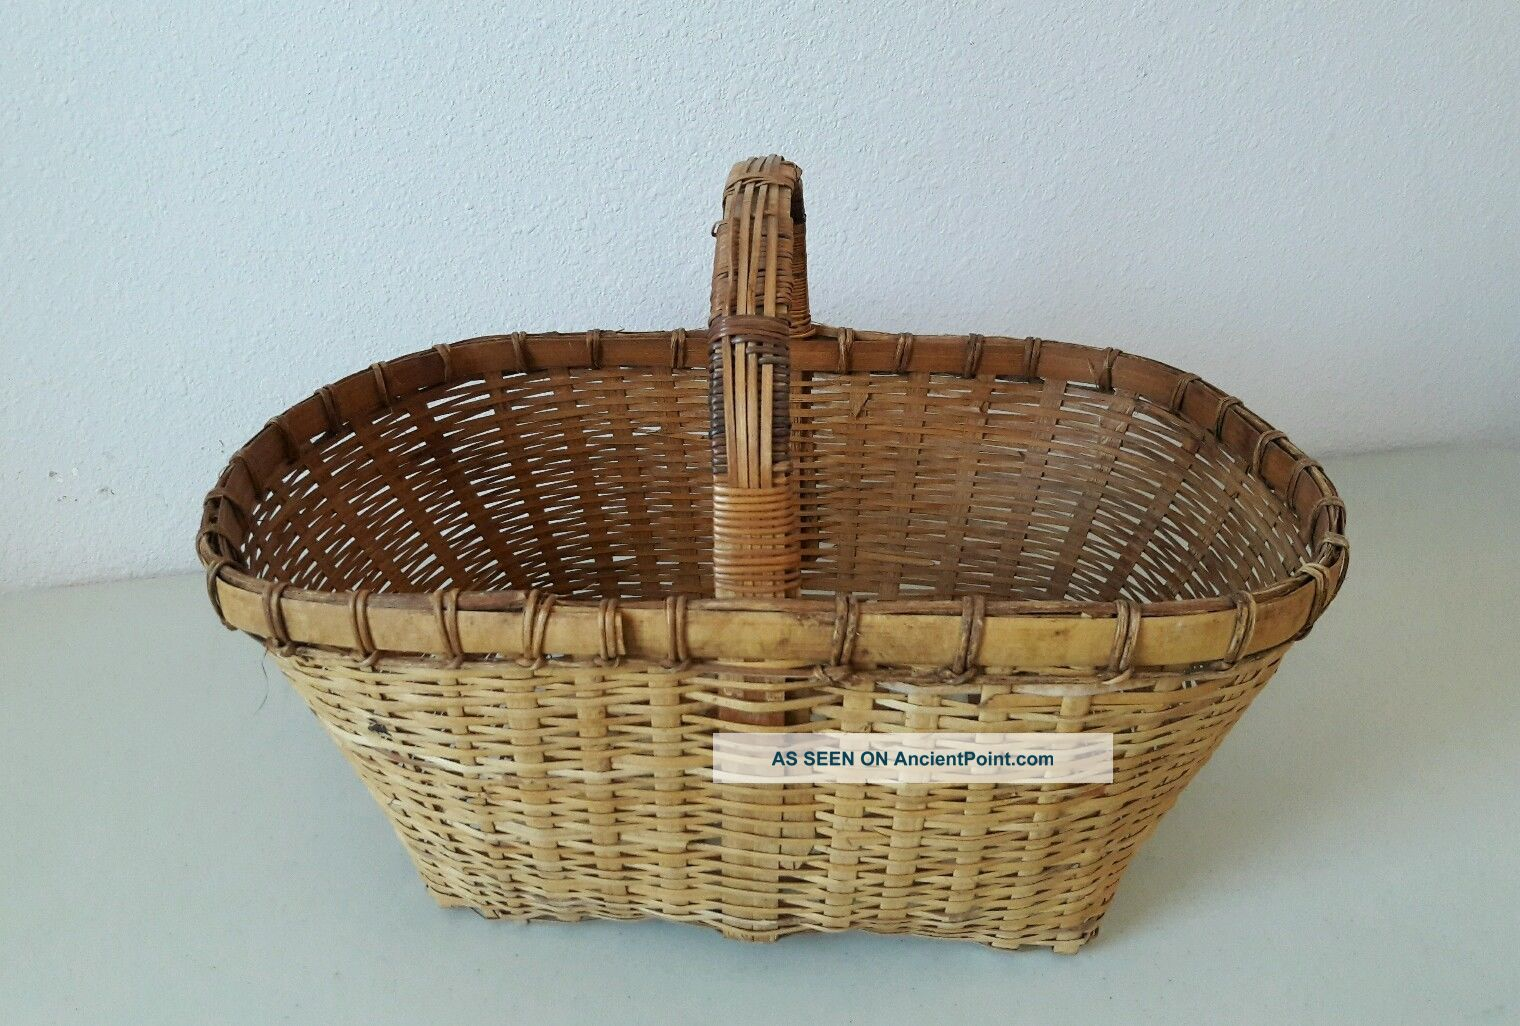 Early Handmade Antique Primitive Large Splint Woven Basket Vintage Market Primitives photo